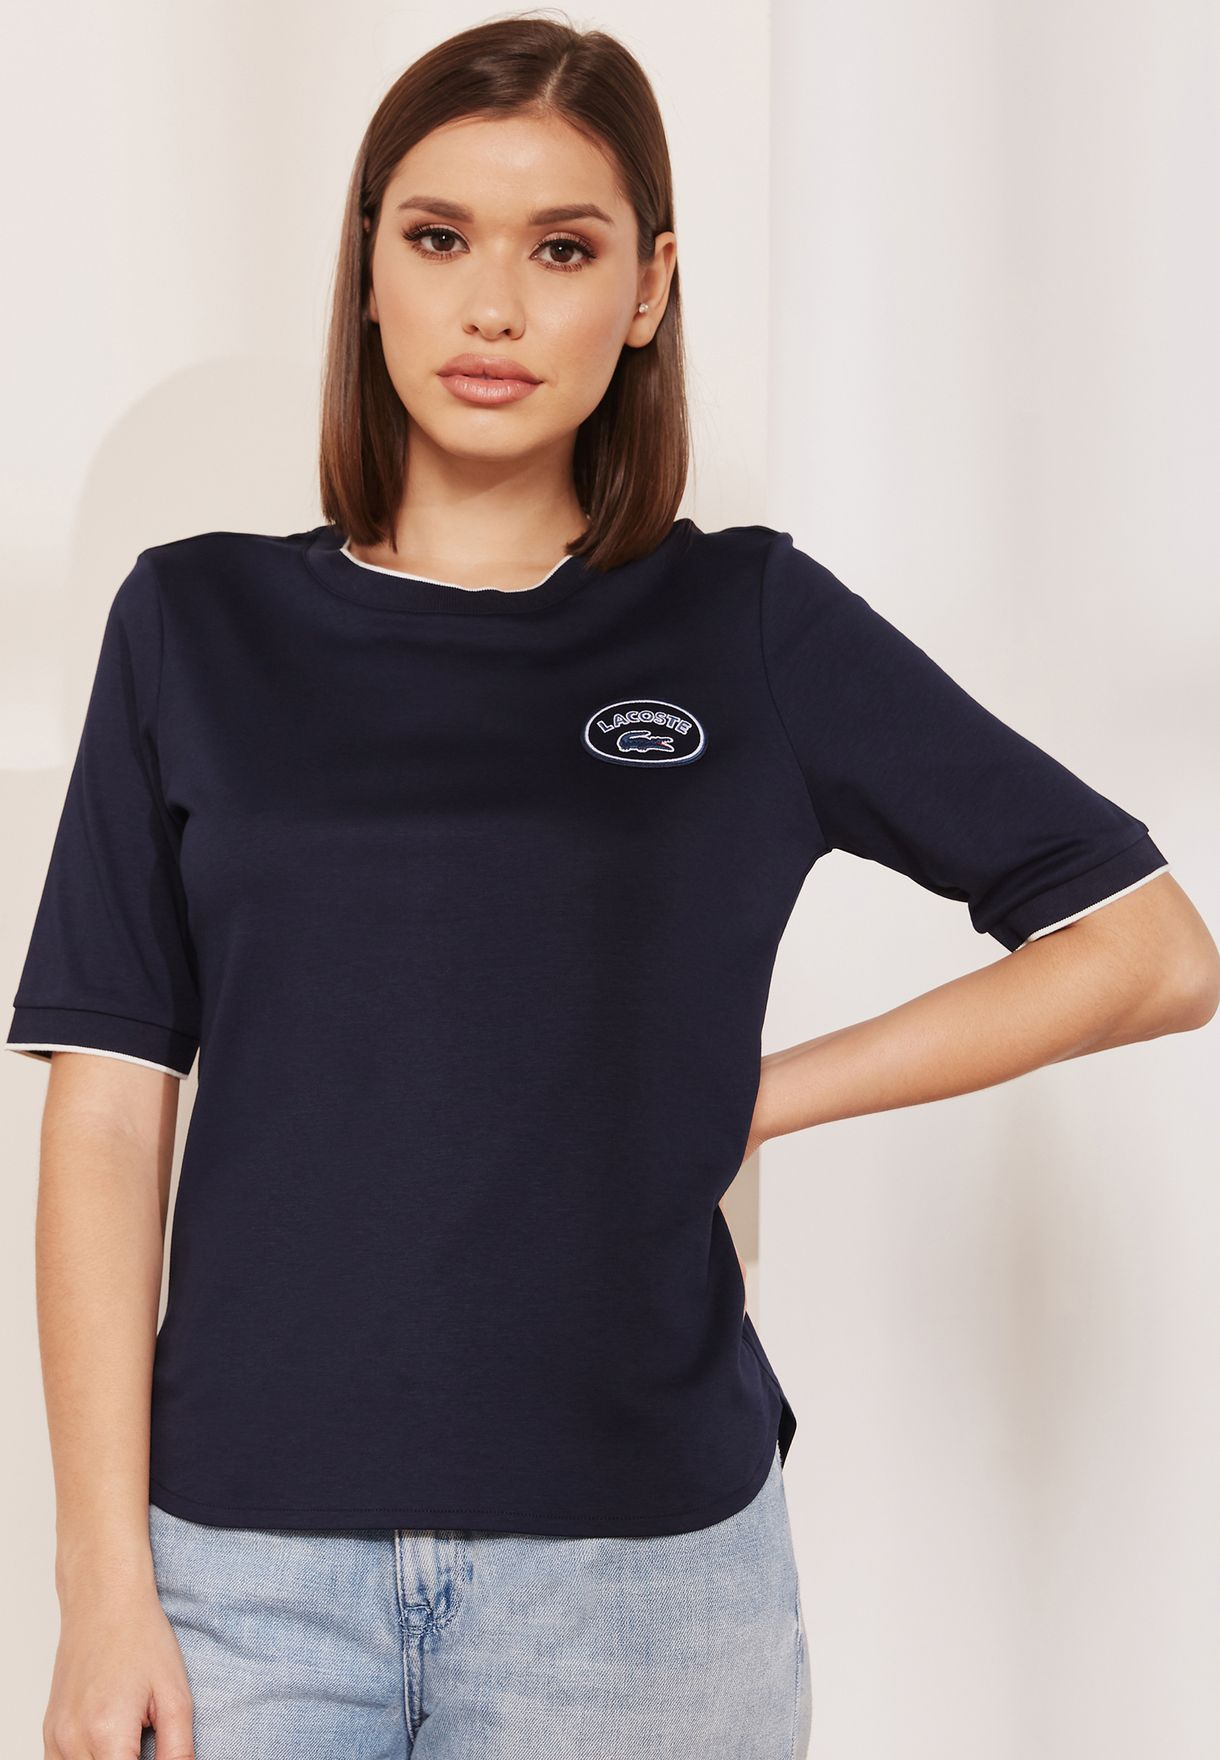 bfd656a5f Shop Lacoste navy Logo T-Shirt TF8804 for Women in UAE - LA014AT38QUB